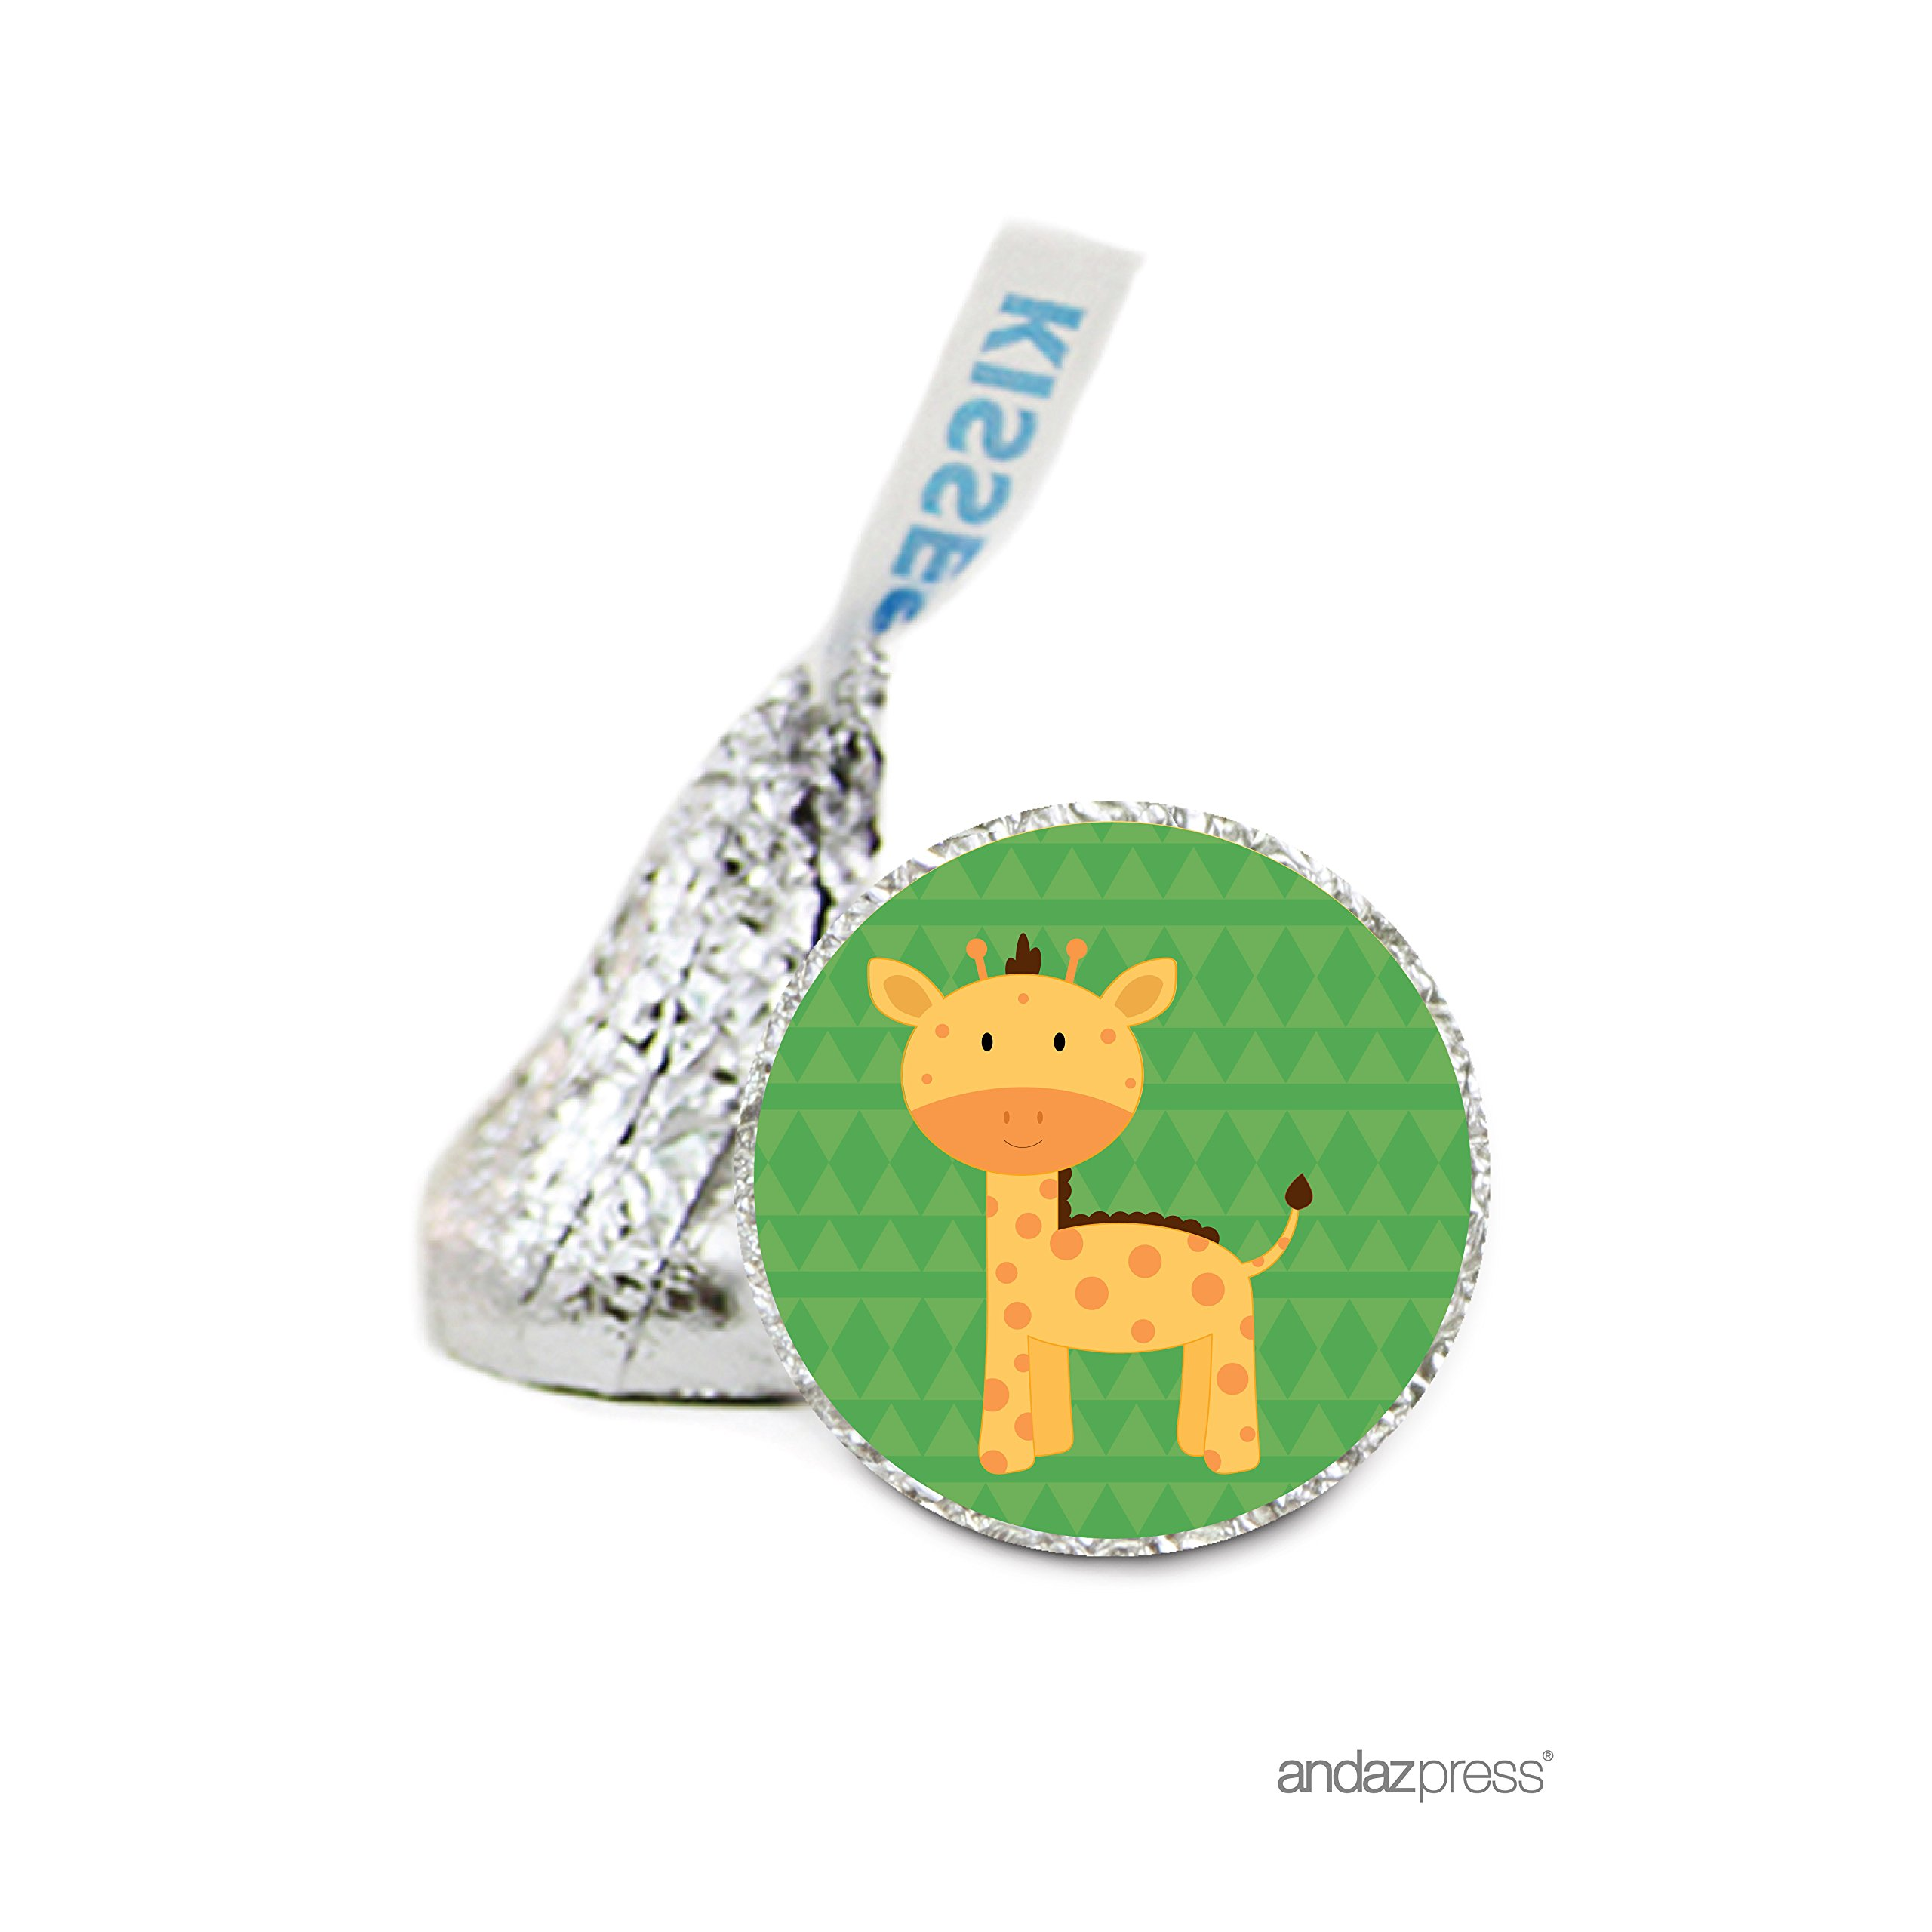 Andaz Press Chocolate Drop Labels Stickers Single, Baby Shower, Giraffe, 216-Pack, for Hershey's Kisses Party Favors, Gifts, Decorations, Birthday